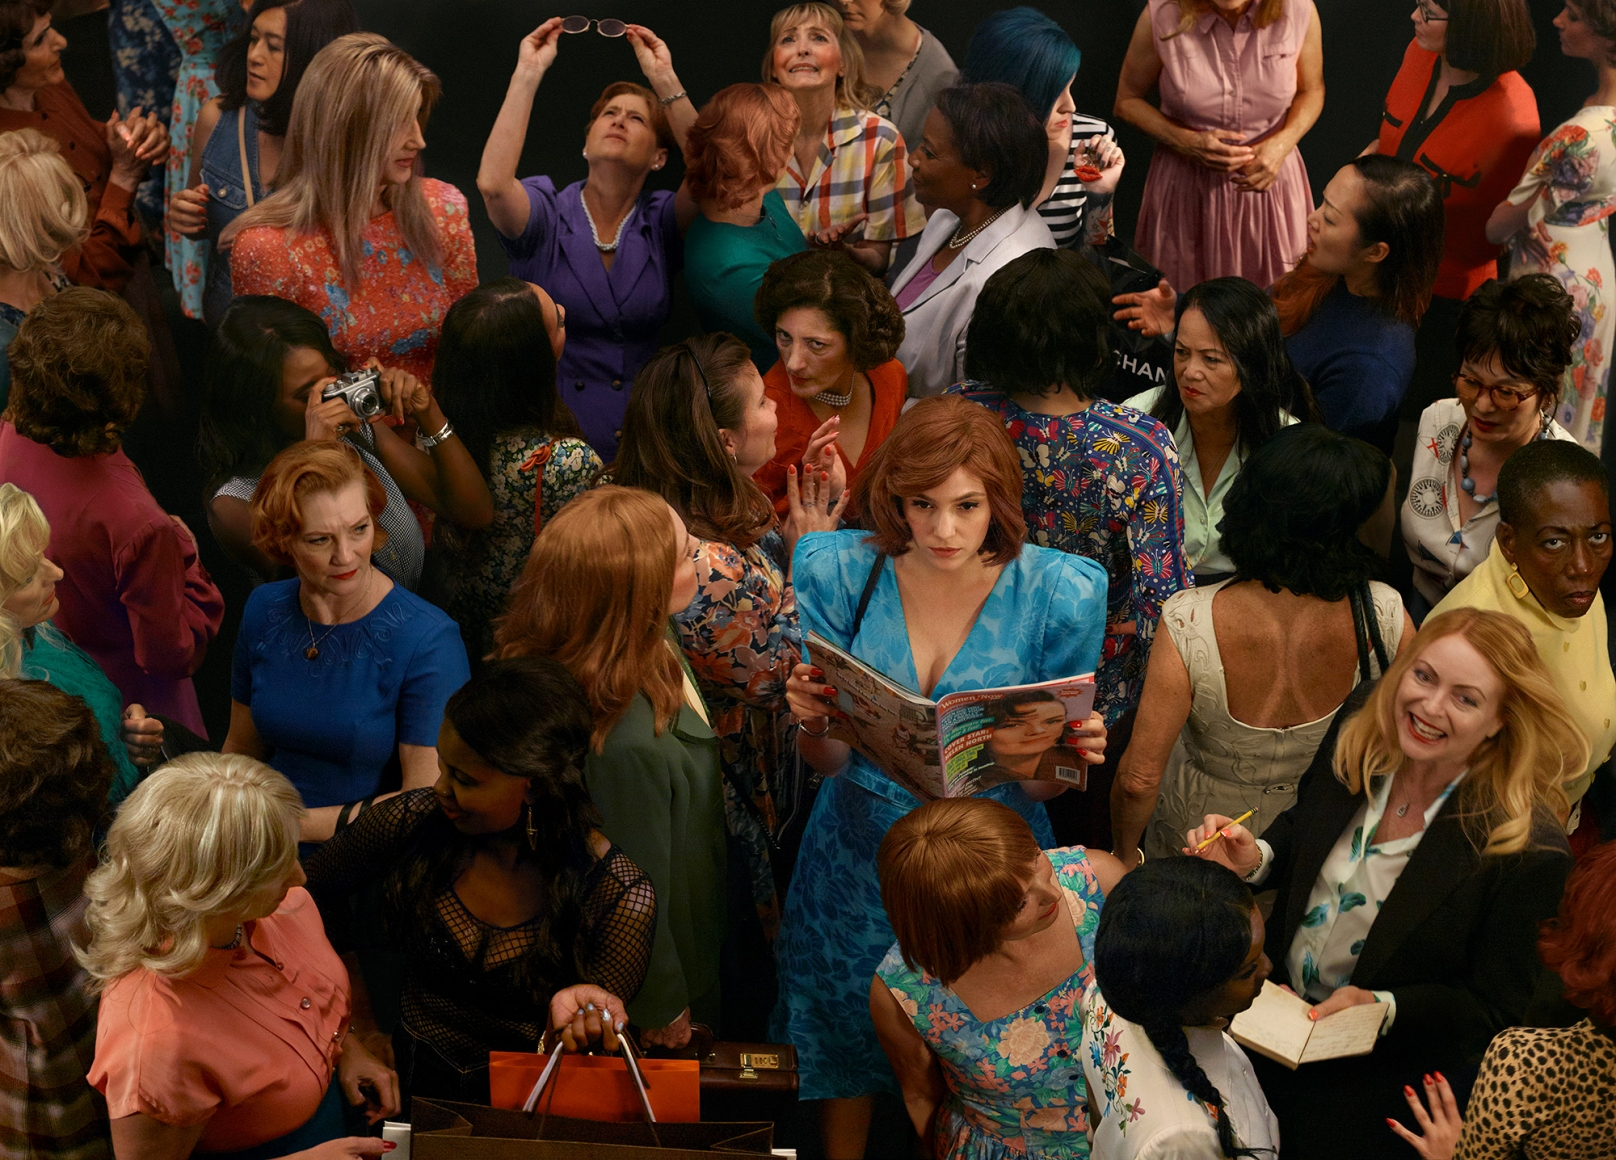 ALEX PRAGER, Women Now, 2018